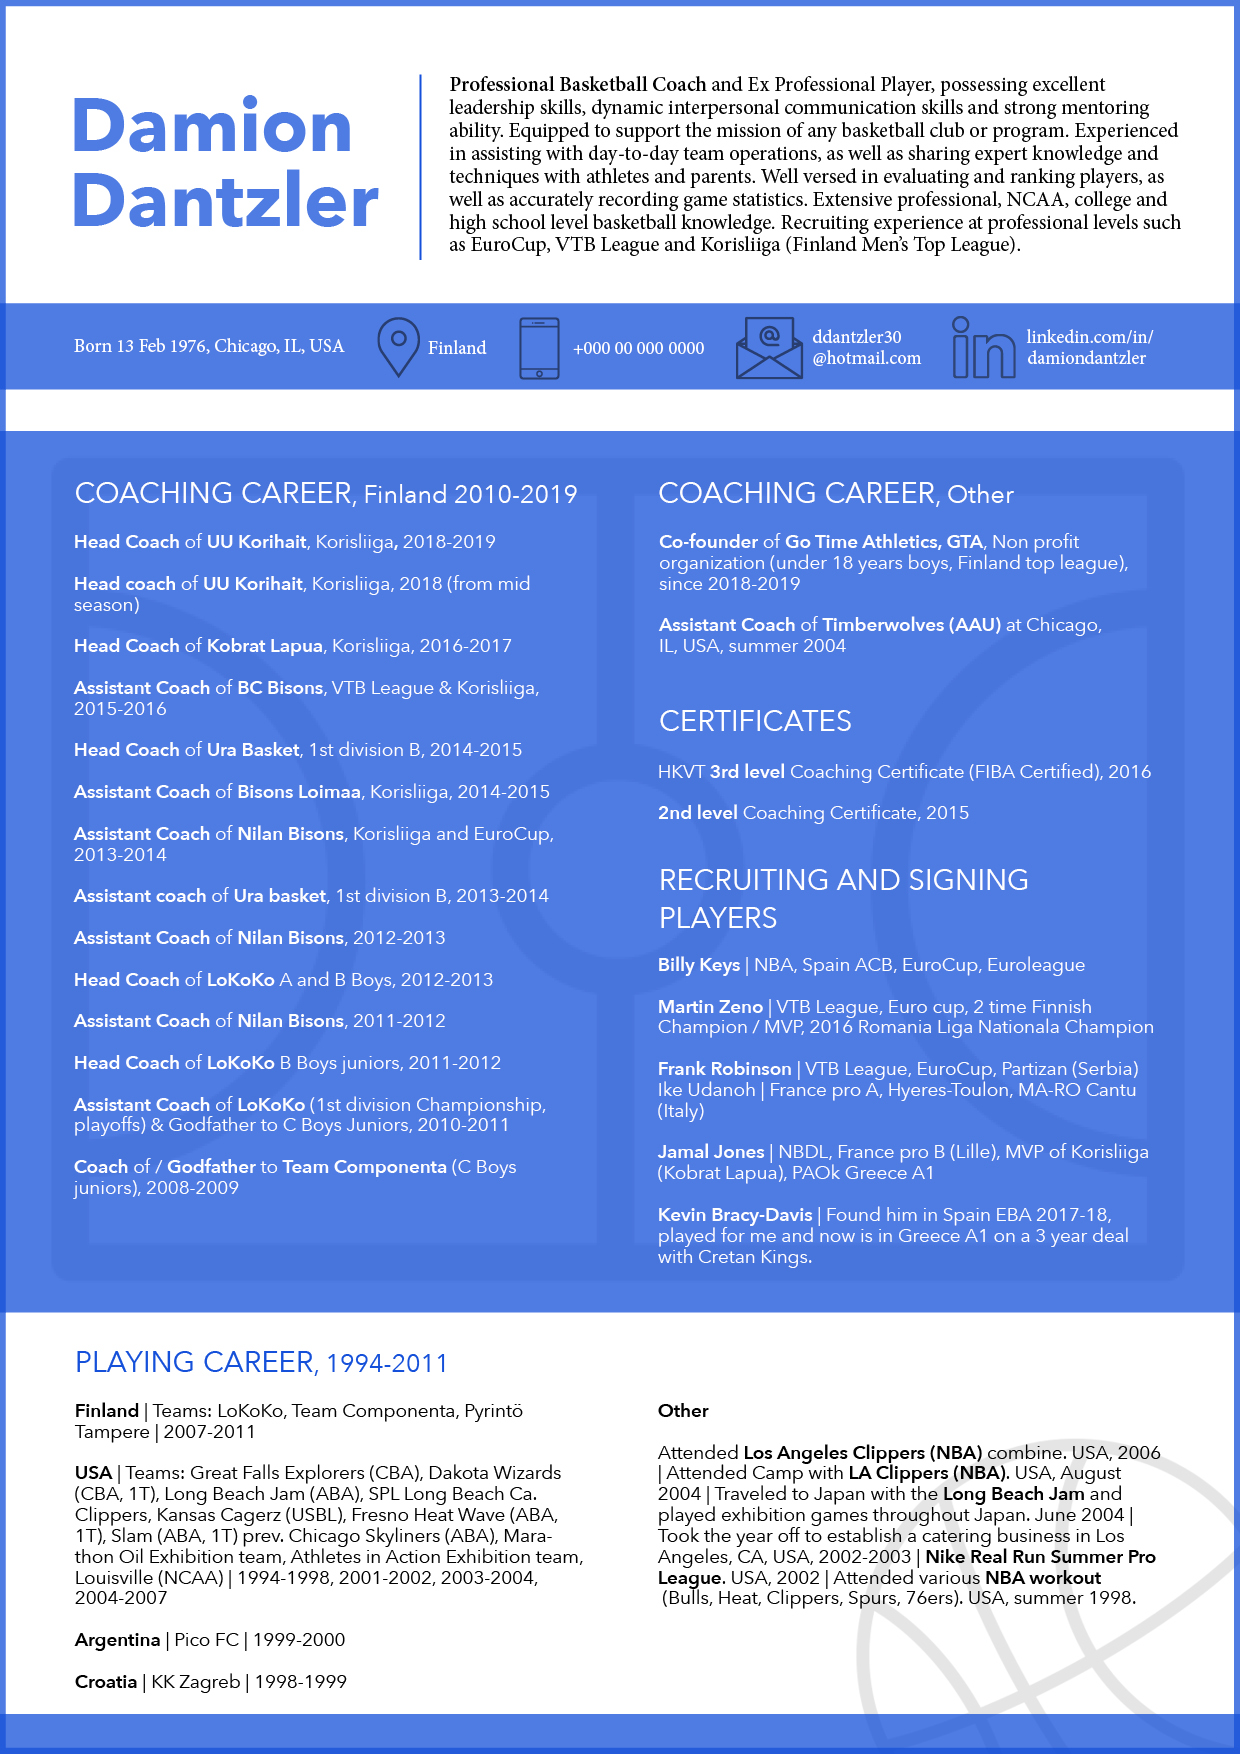 CV_Resume_Design_Basketball_Coach_Damion_Dantzler